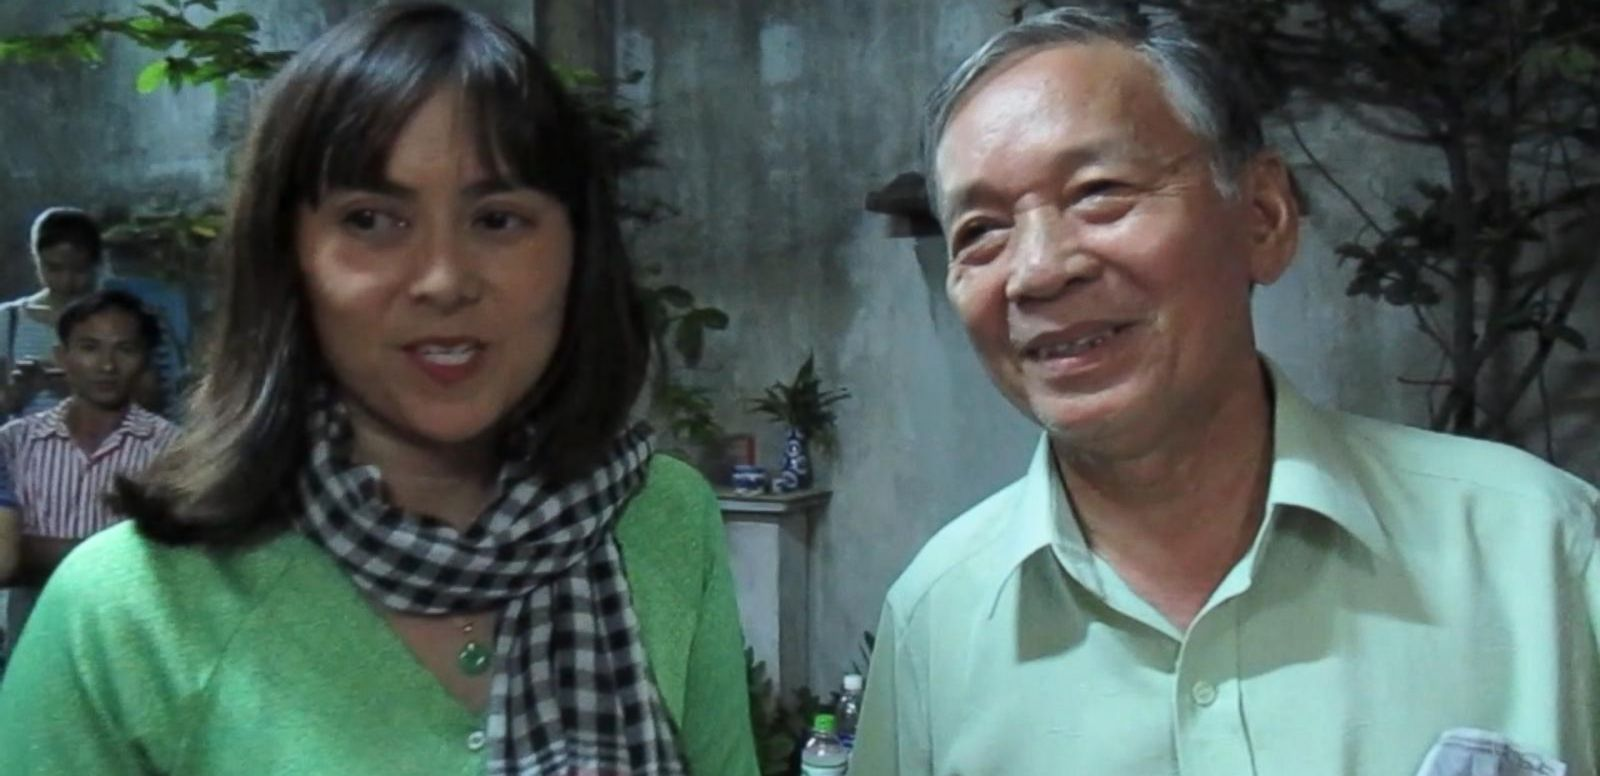 Woman Rescued From Vietnam Reunites With Her Father